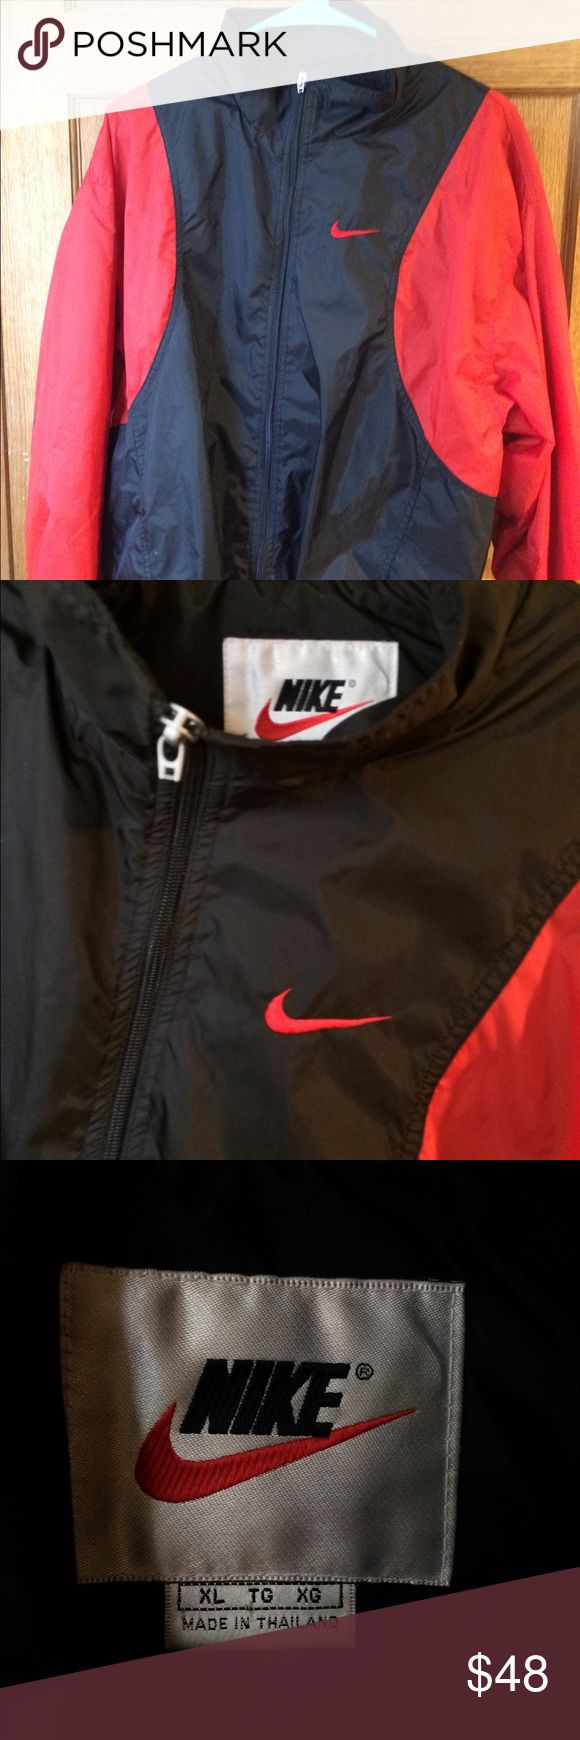 Nike Red/Black Windbreaker Red/Black Nike Windbreaker.  Size: XL (fits more like a M-L; snug fit)  No damage, stains, rips etc... Perfect condition! Nike Jackets & Coats Windbreakers